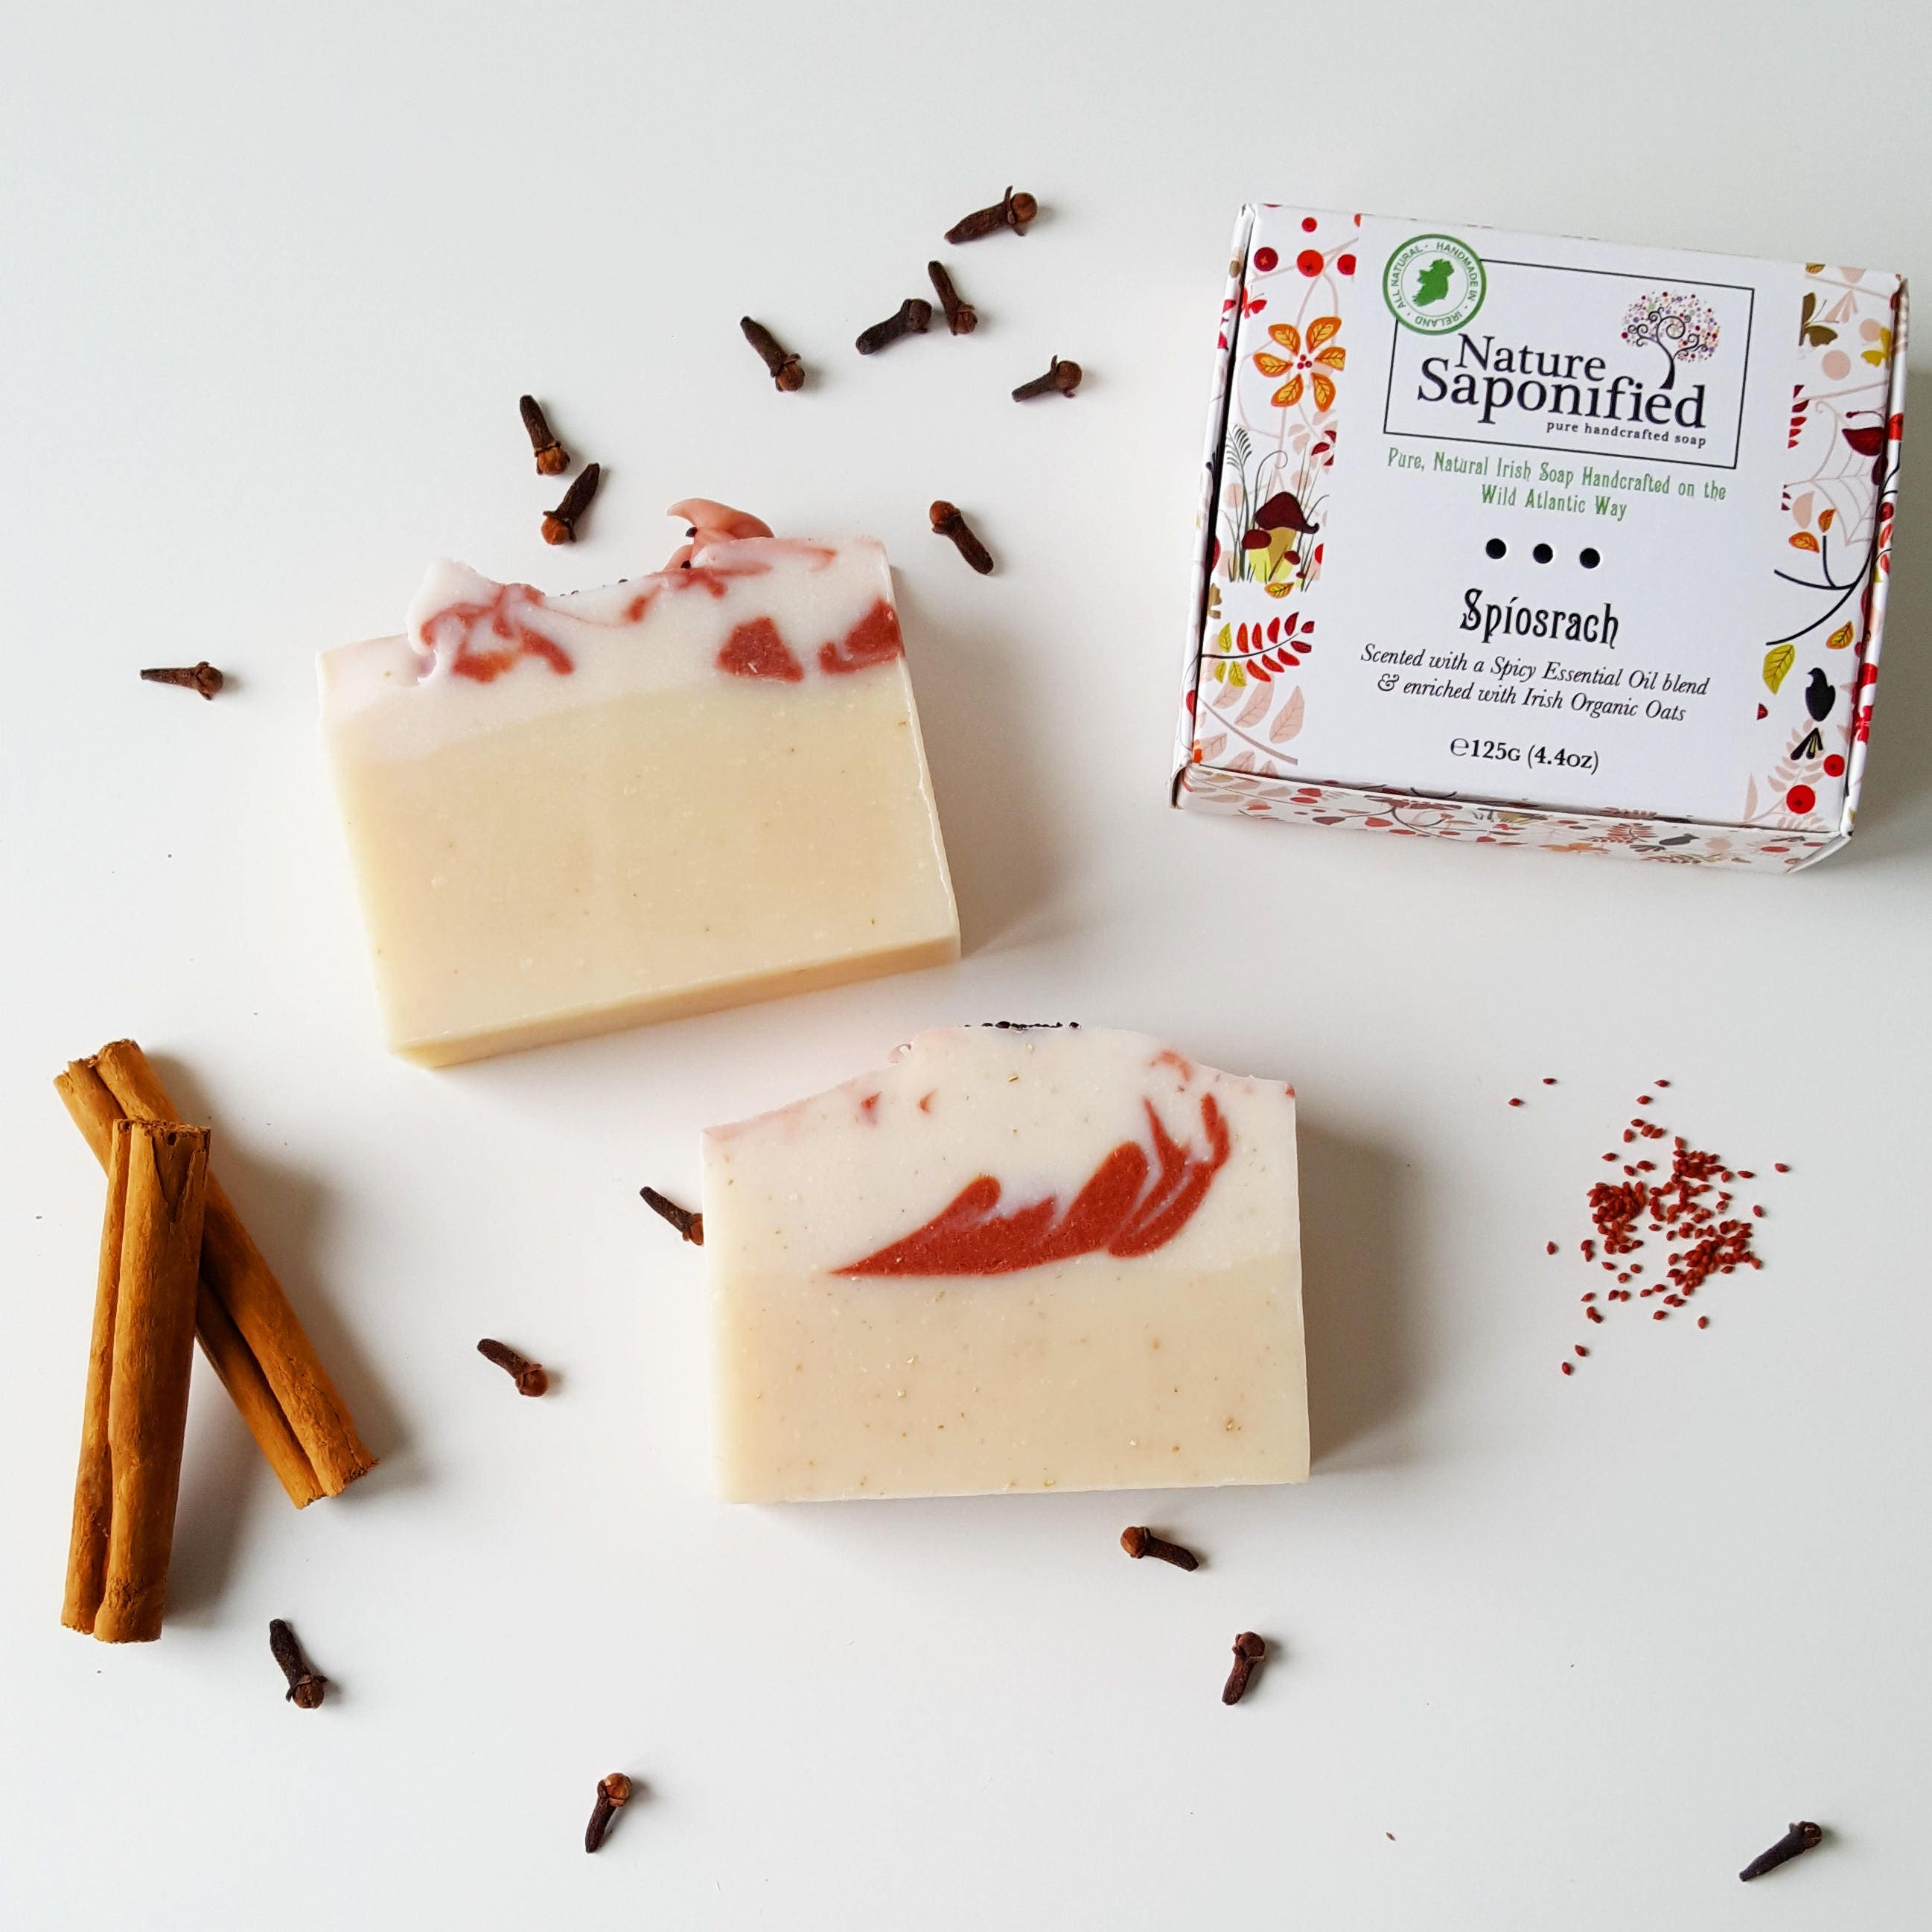 spiosrach luxury cinnamon  u0026 clove irish soap spicy soap